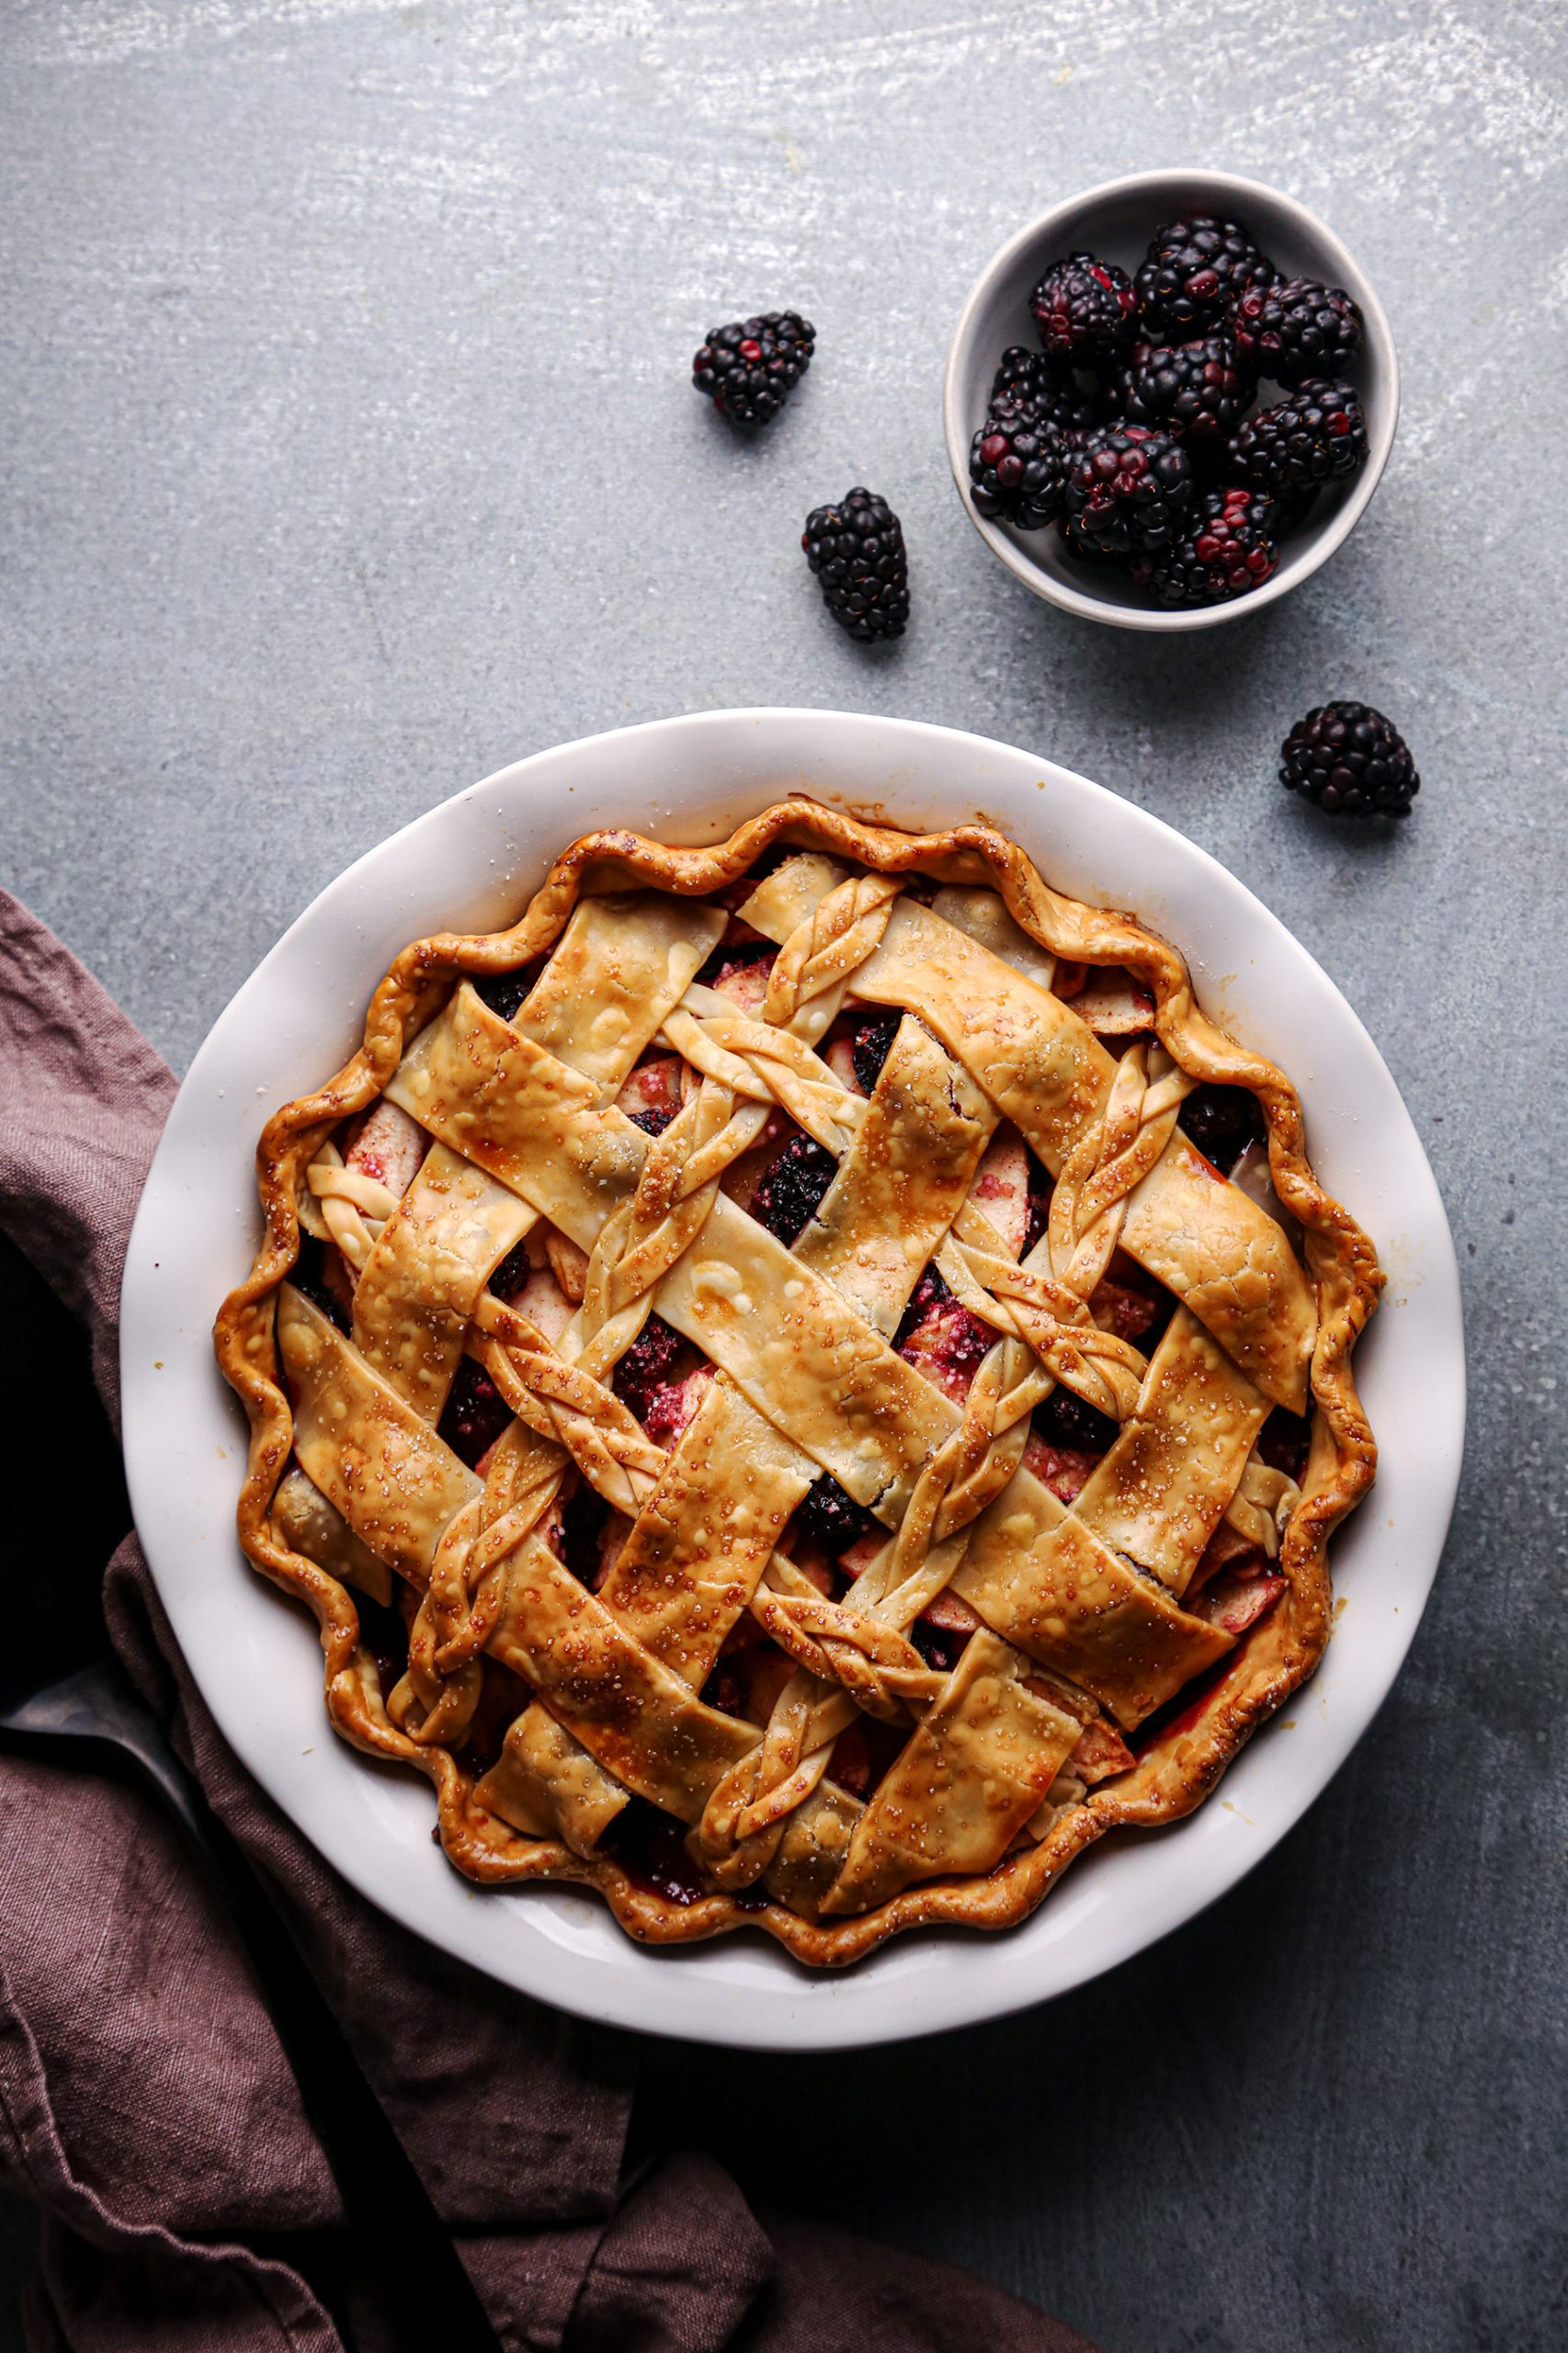 Apple Blackberry Pie | Vegan and Refined Sugar Free with Gluten Free Option